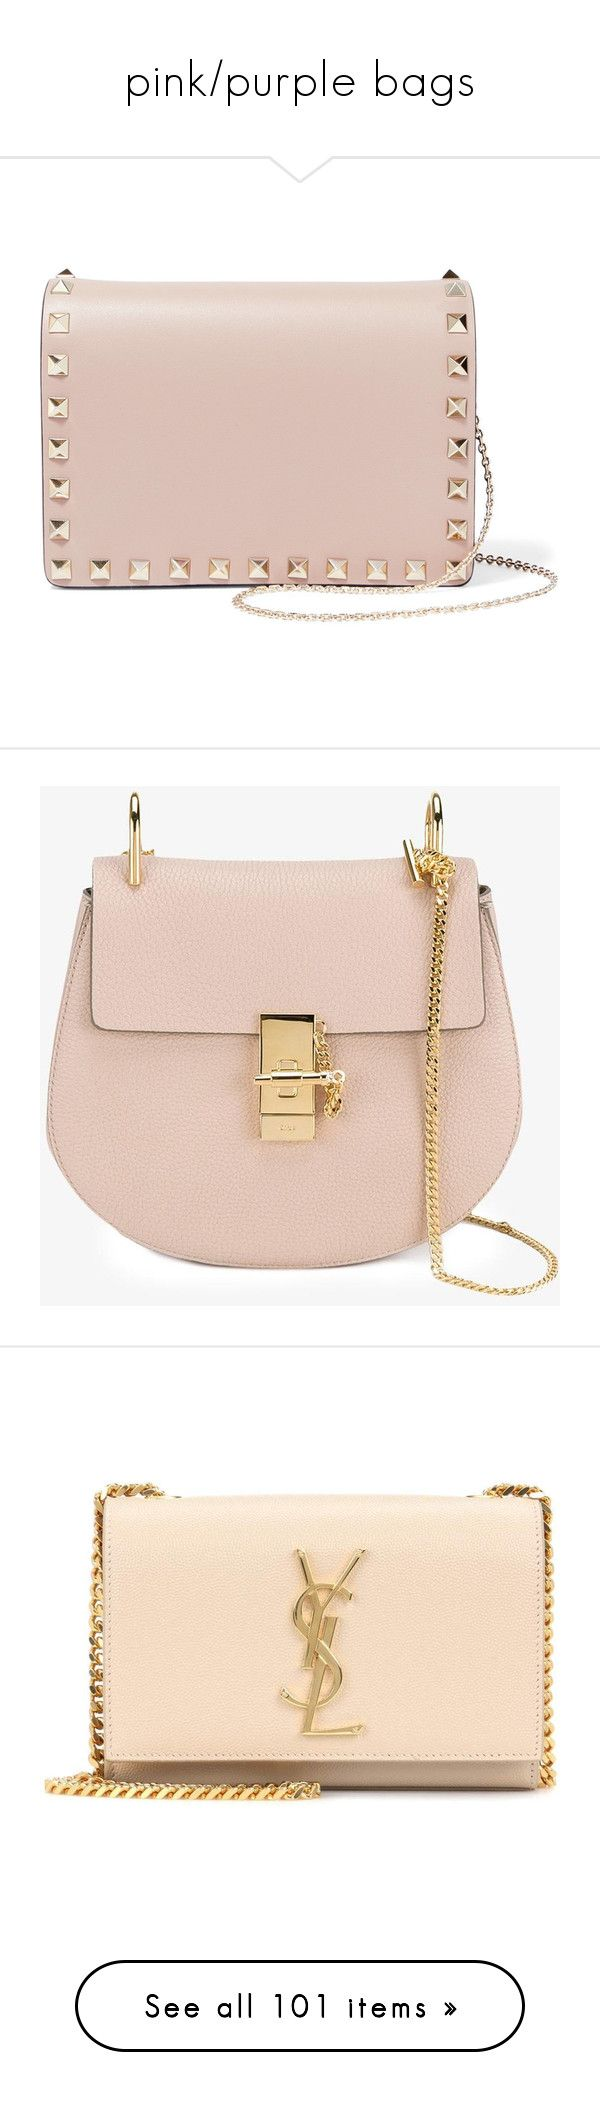 """pink/purple bags"" by mrstomlinson974 on Polyvore featuring bags, handbags, shoulder bags, blush, leather purse, valentino purses, pink leather purse, pink leather handbags, leather shoulder handbags and pink handbags"